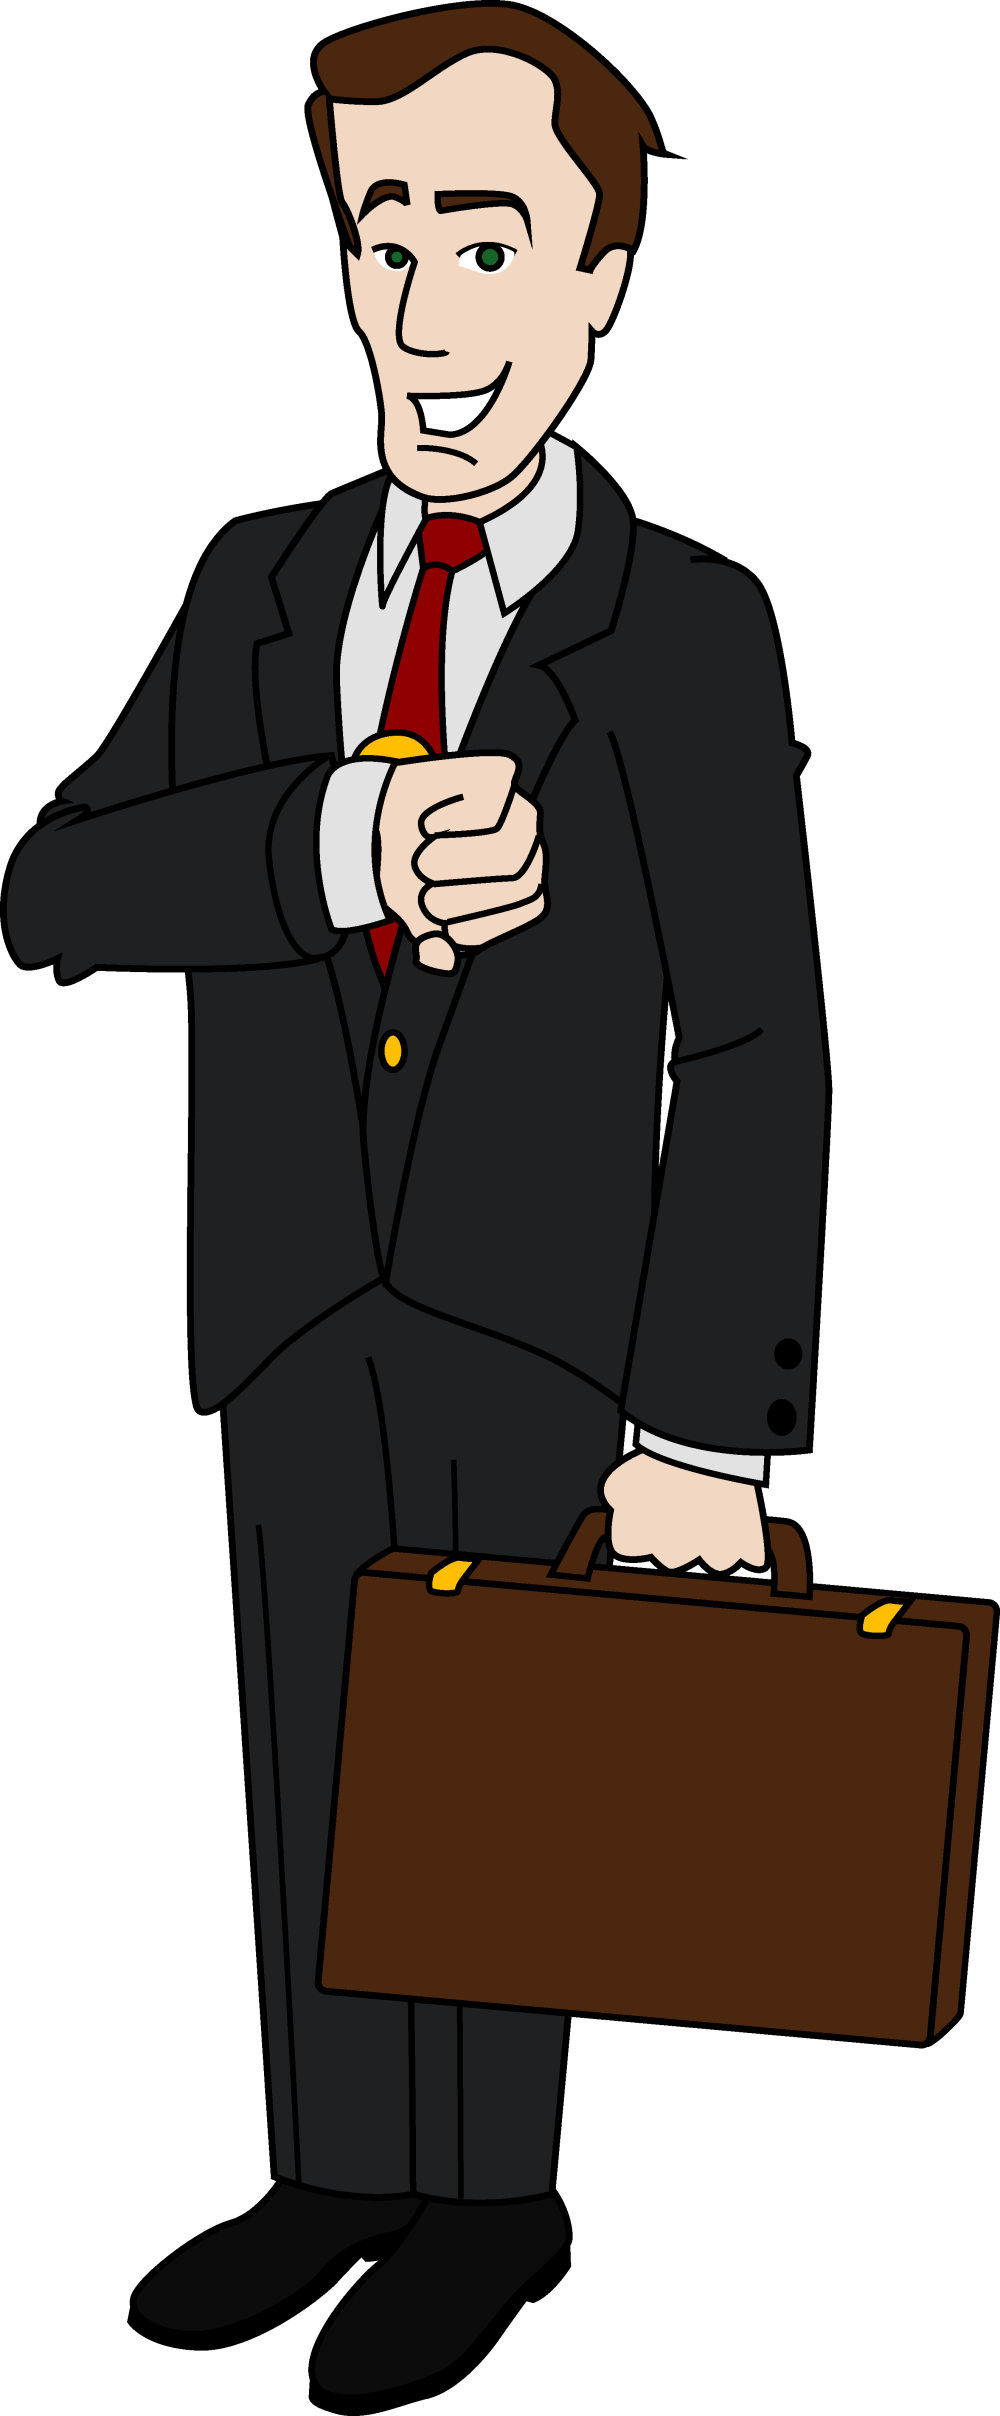 medium resolution of business men people clipart businessman